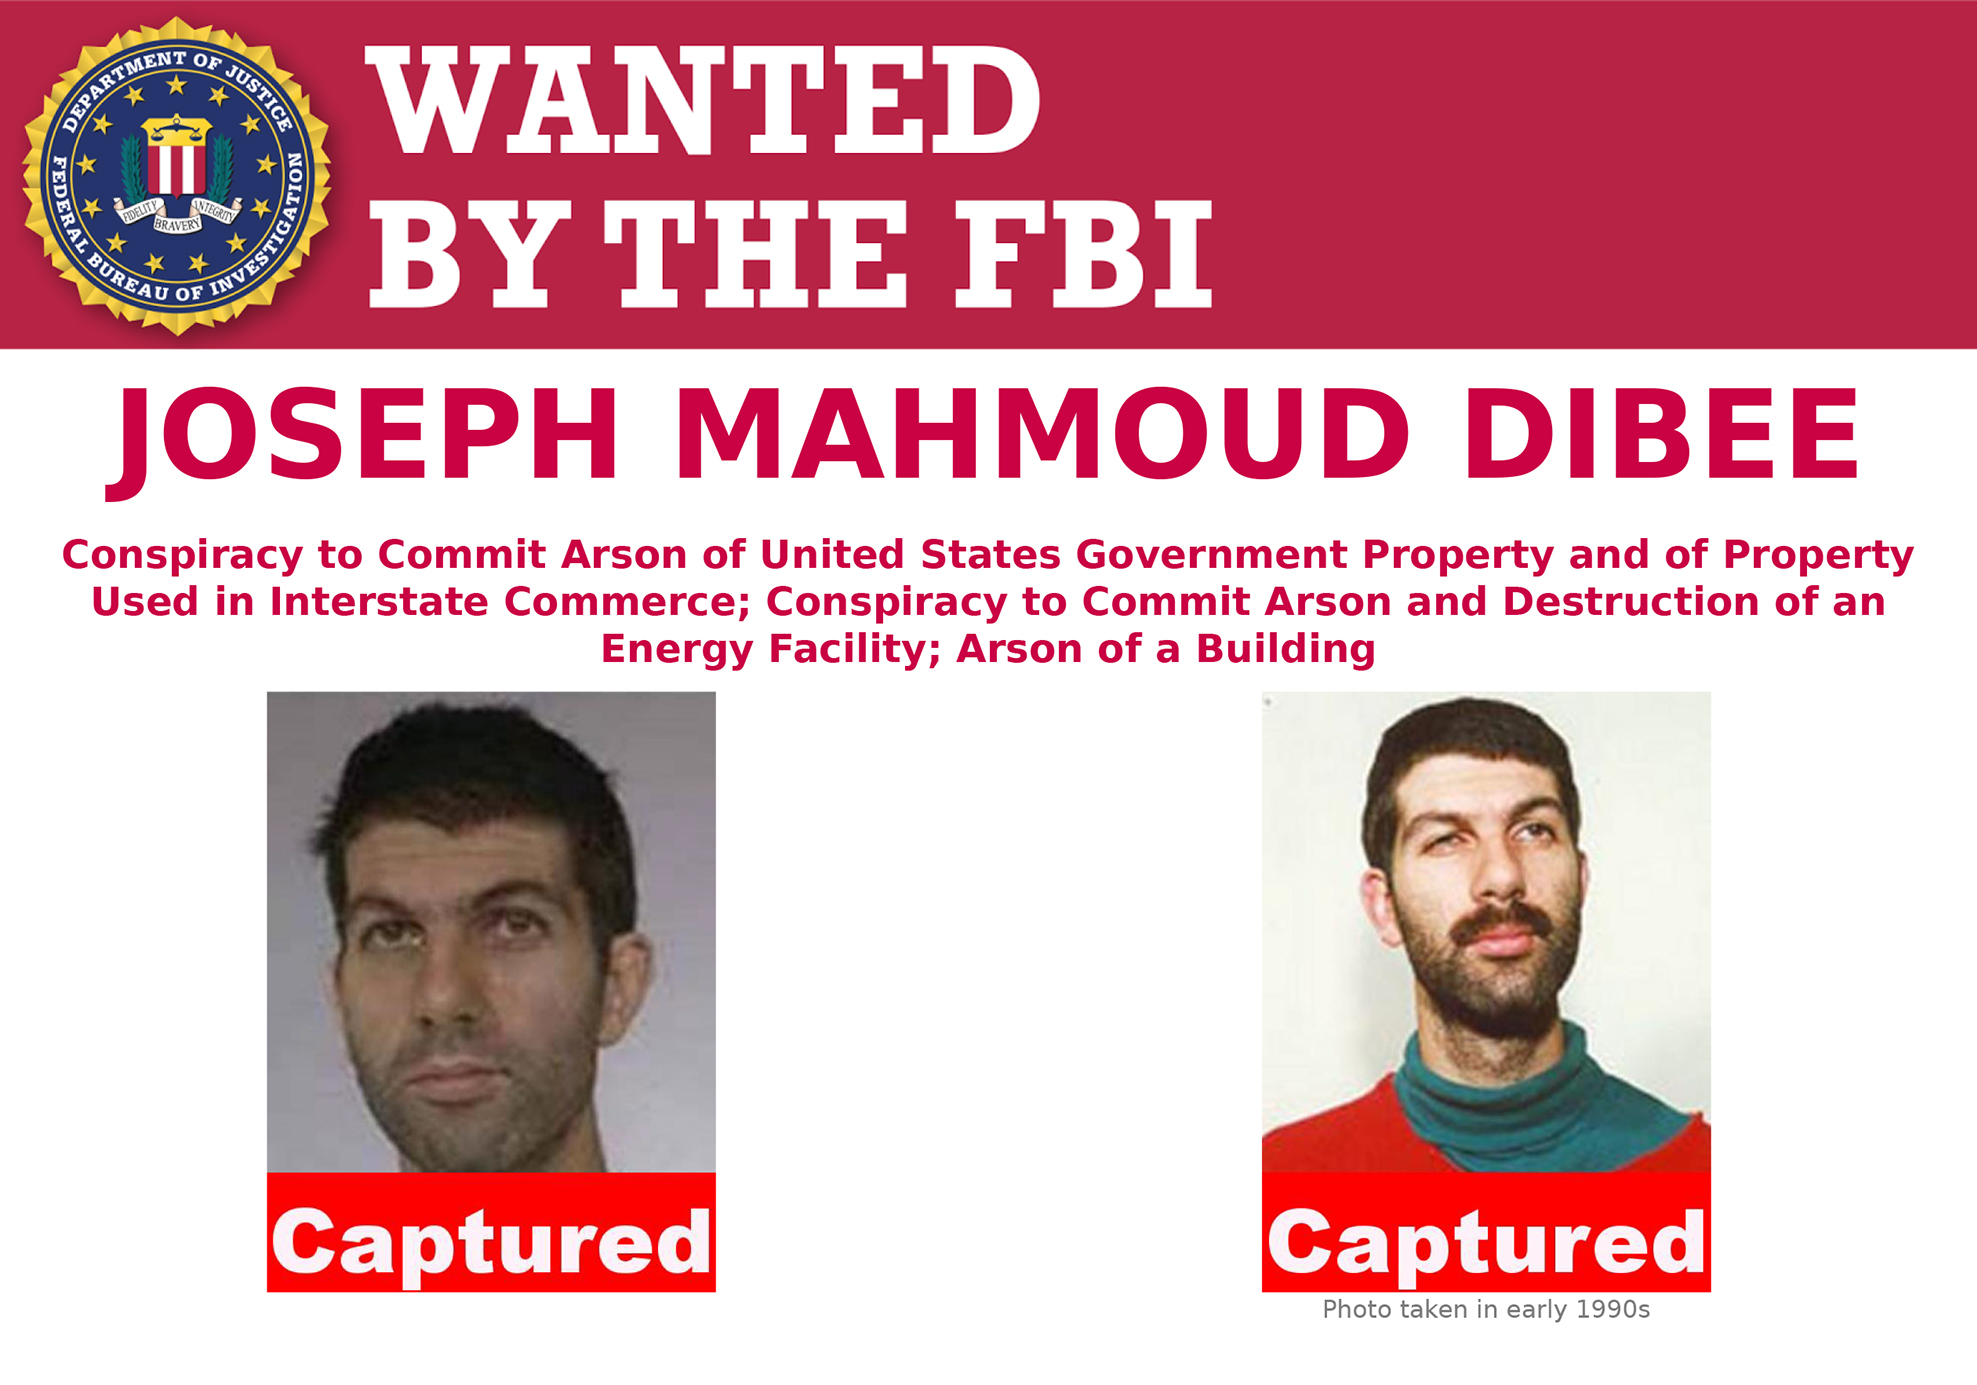 Joseph Mahmoud Dibee, one of two remaining fugitives linked to a domestic terrorism group that carried out dozens of criminal acts in the late 1990s, ranging from vandalism to arson, has been apprehended—with help from the Cuban government.